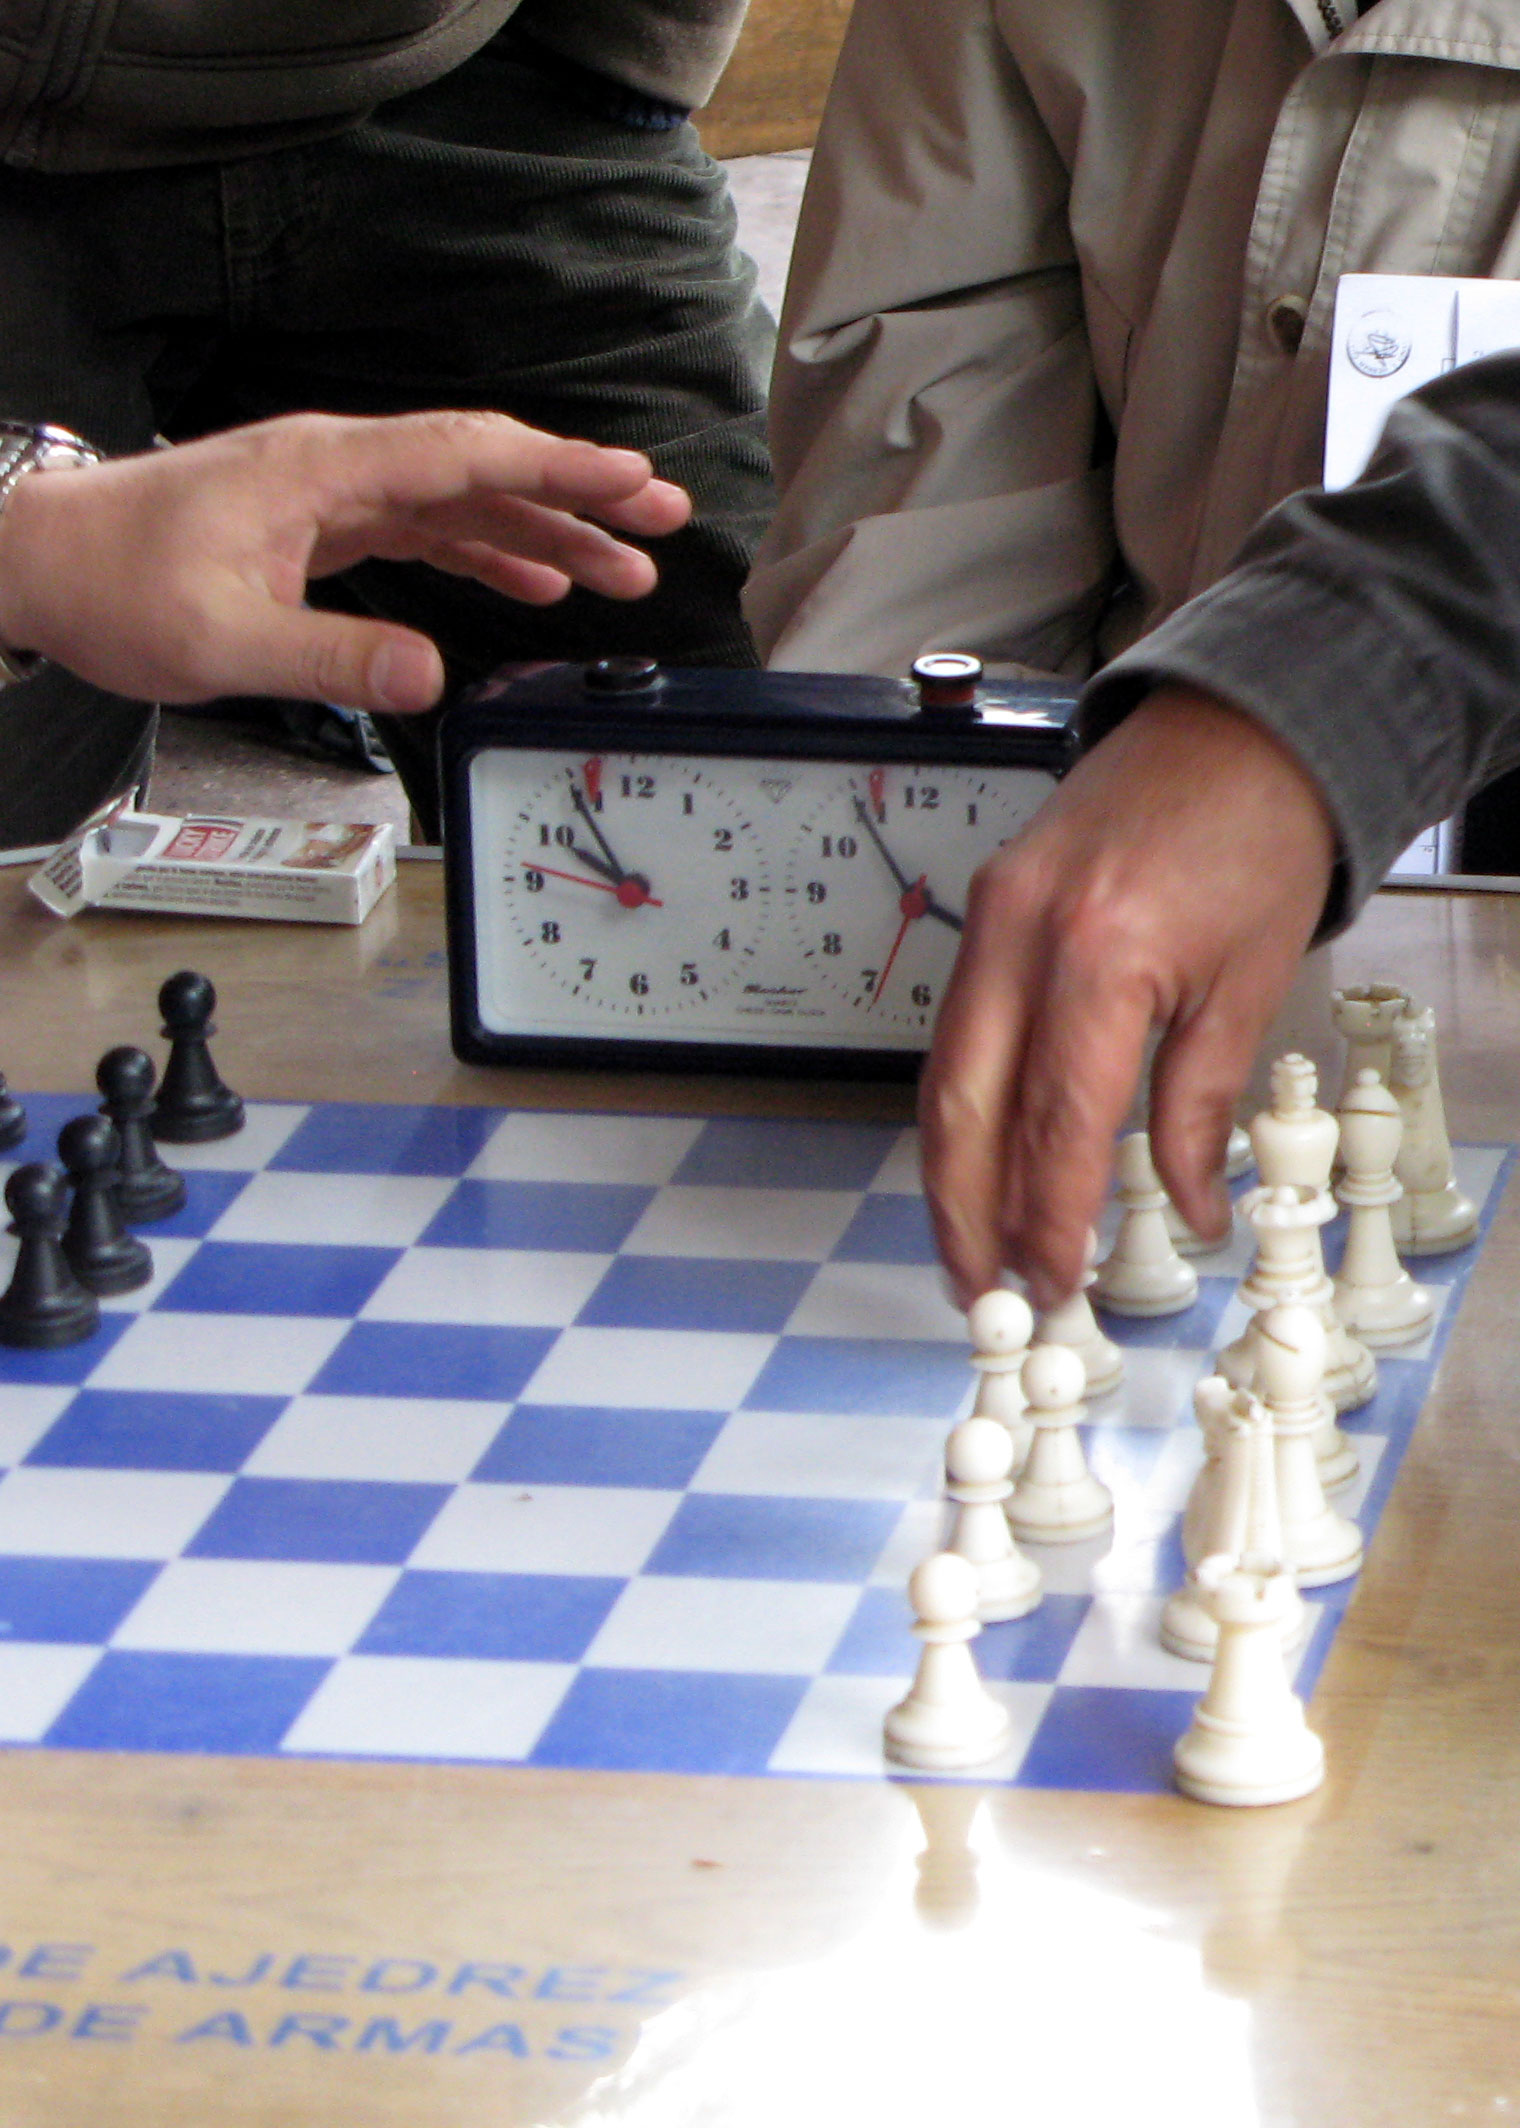 Finger on the timer as the opponent makes his move.